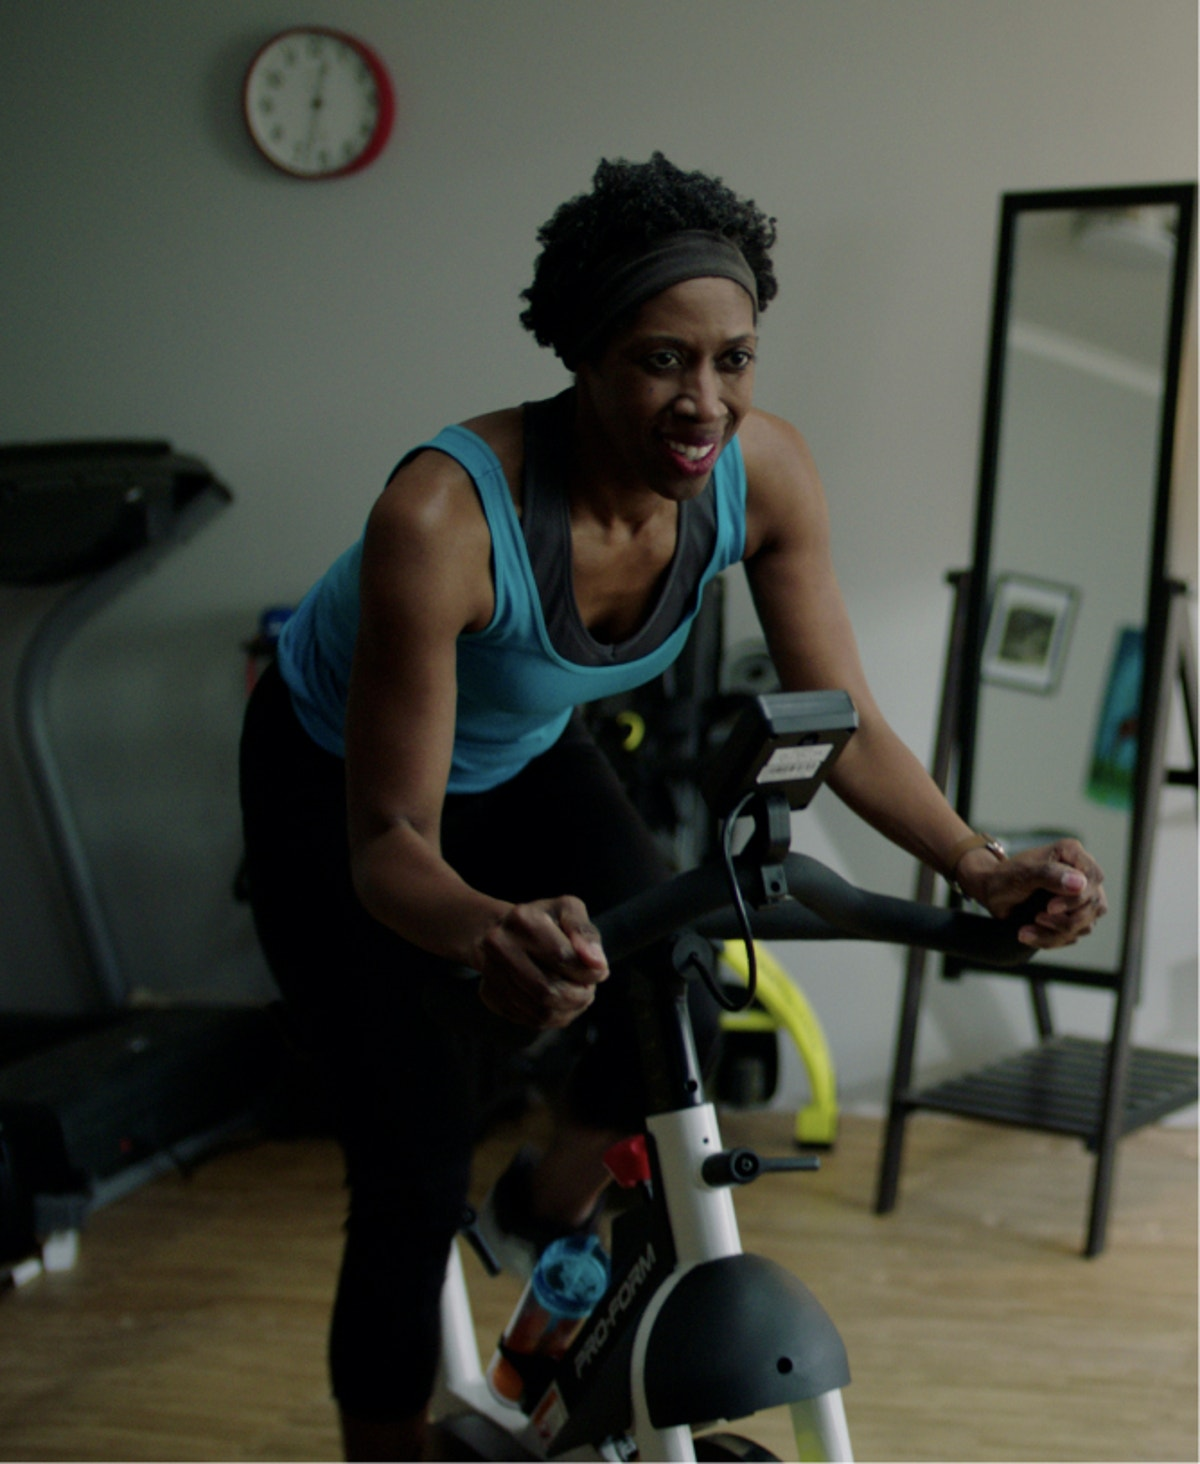 iFIT member works out with a bike class